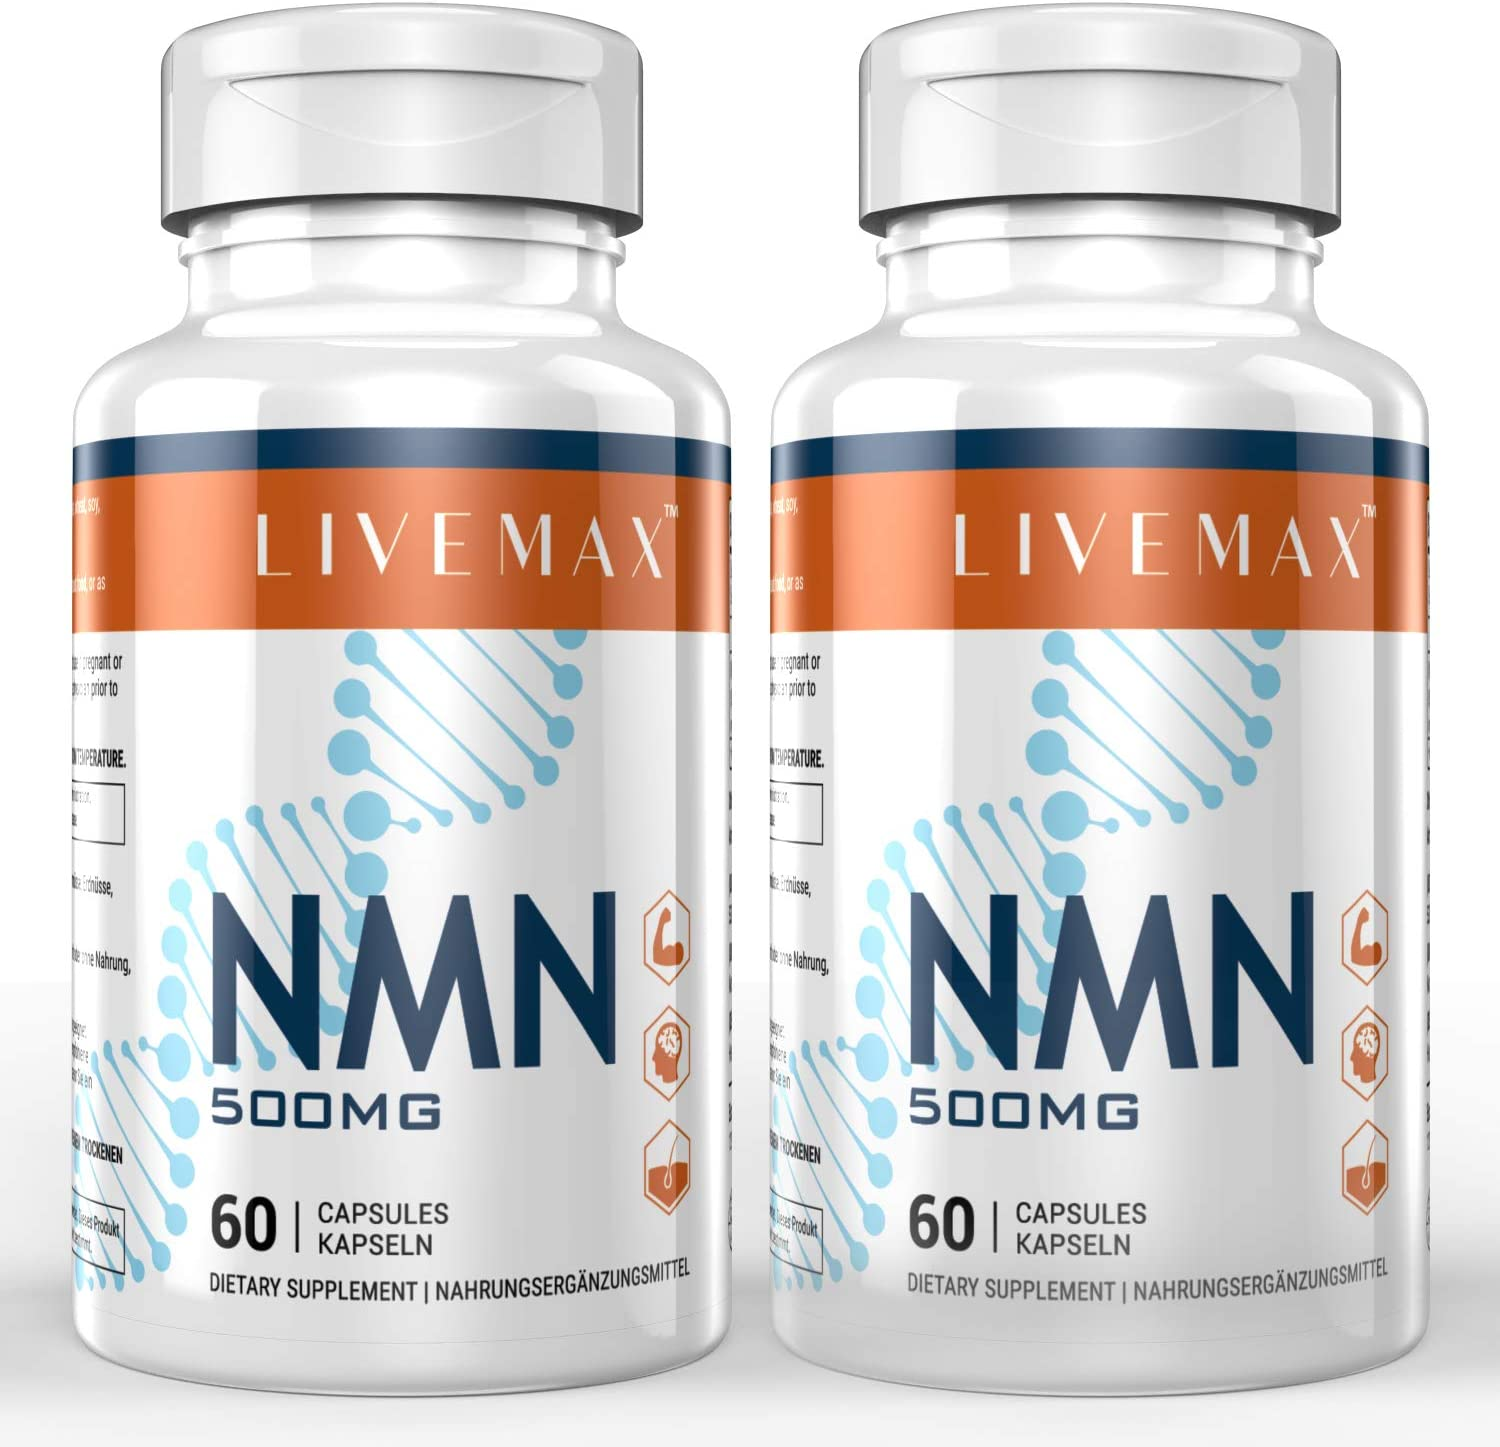 NMN Supplement 500mg- Enhance Boost Max 87% OFF Impro Concentration New life Energy